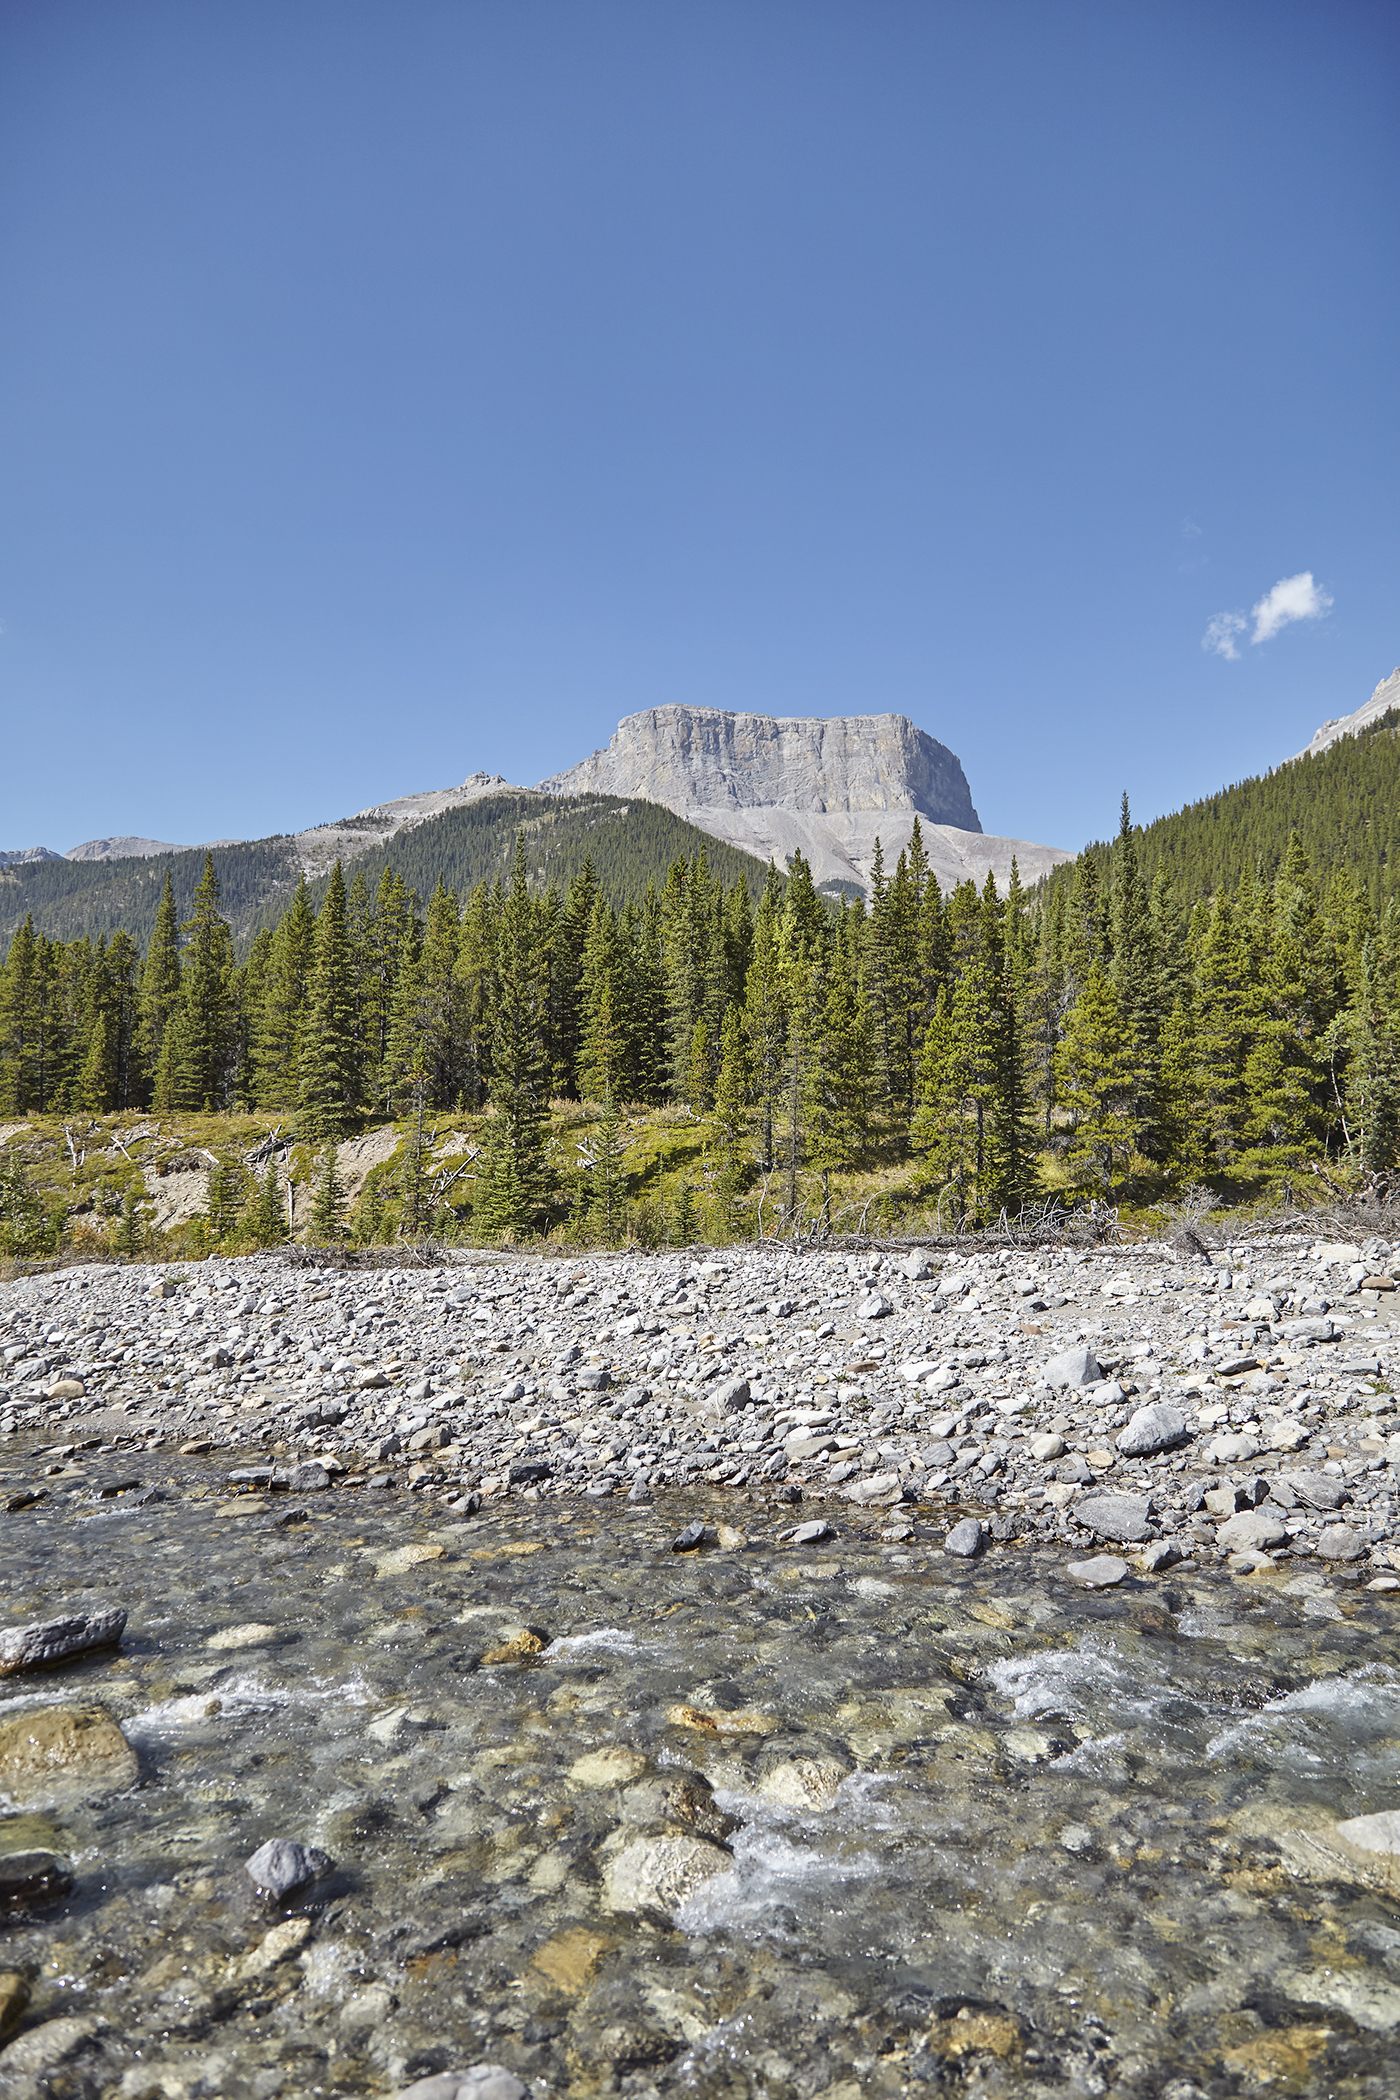 Mount Romulus from the Little Elbow River.